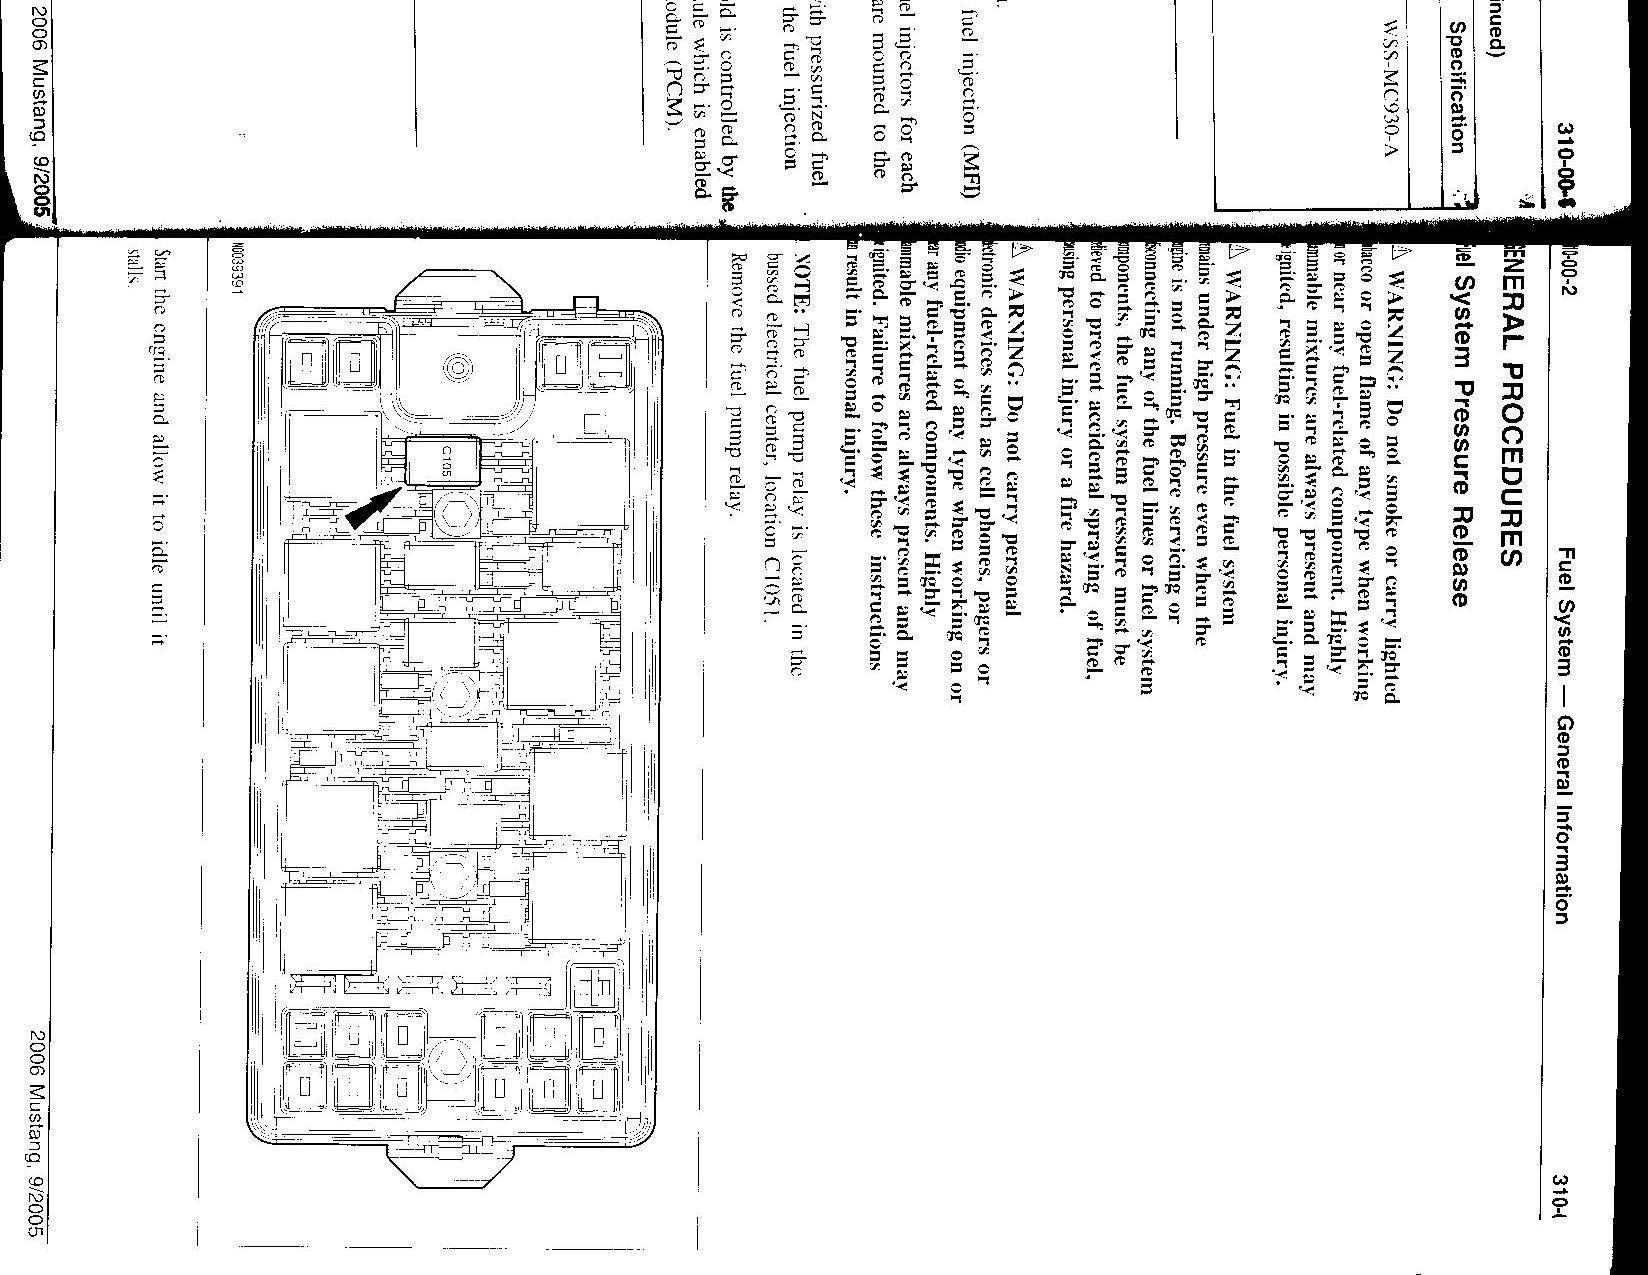 hight resolution of 2006 mustang gt fuse box wiring diagram sheet2005 ford mustang gt fuse box diagram wiring diagram